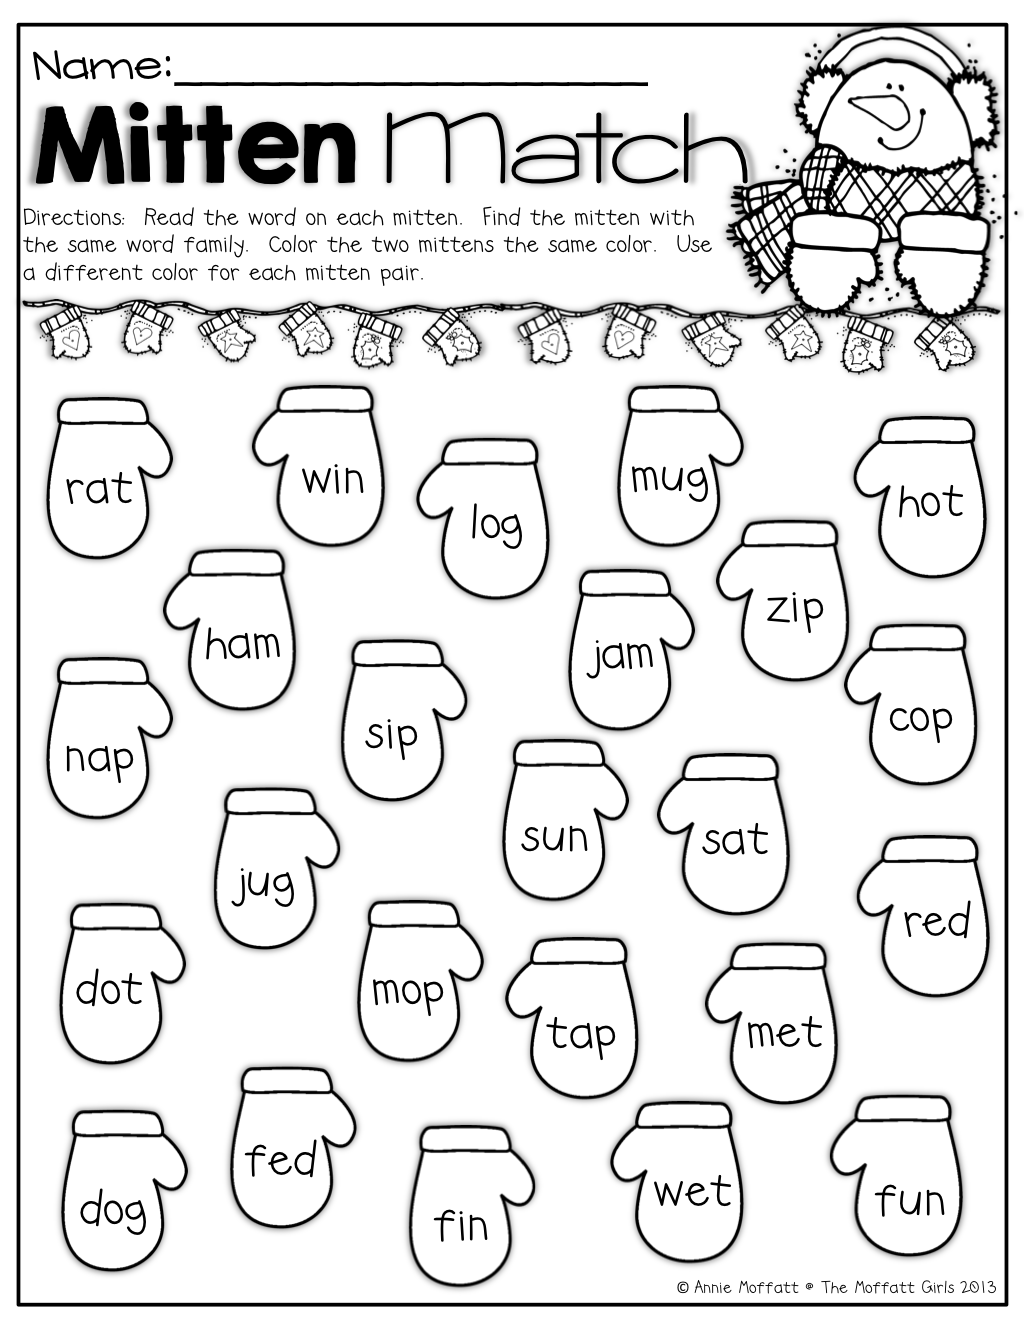 Mitten Match Find And Color The Mittens With The Same Word Family